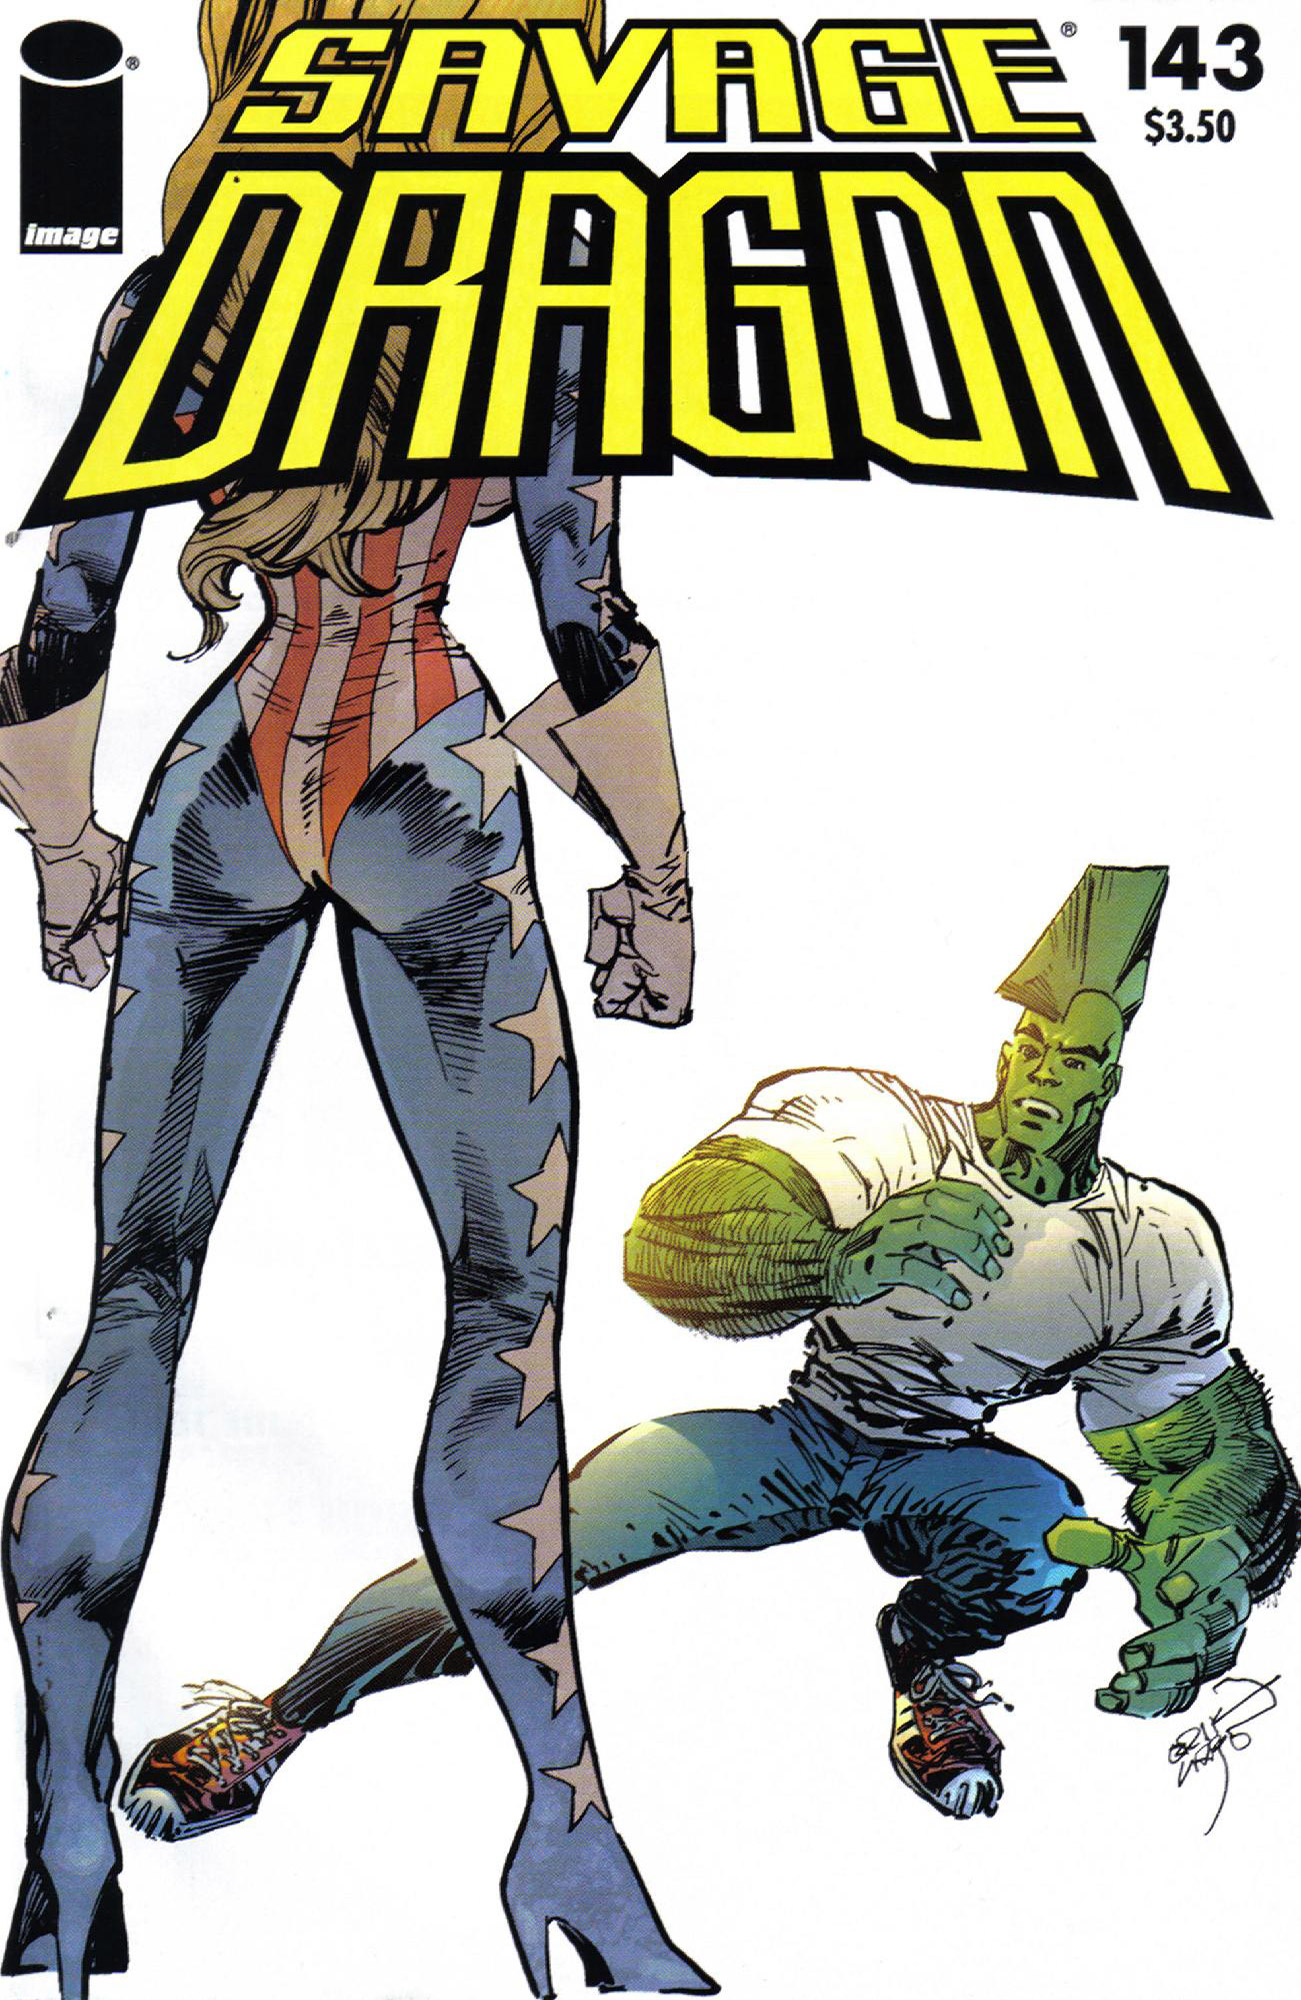 Cover Savage Dragon Vol.2 #143